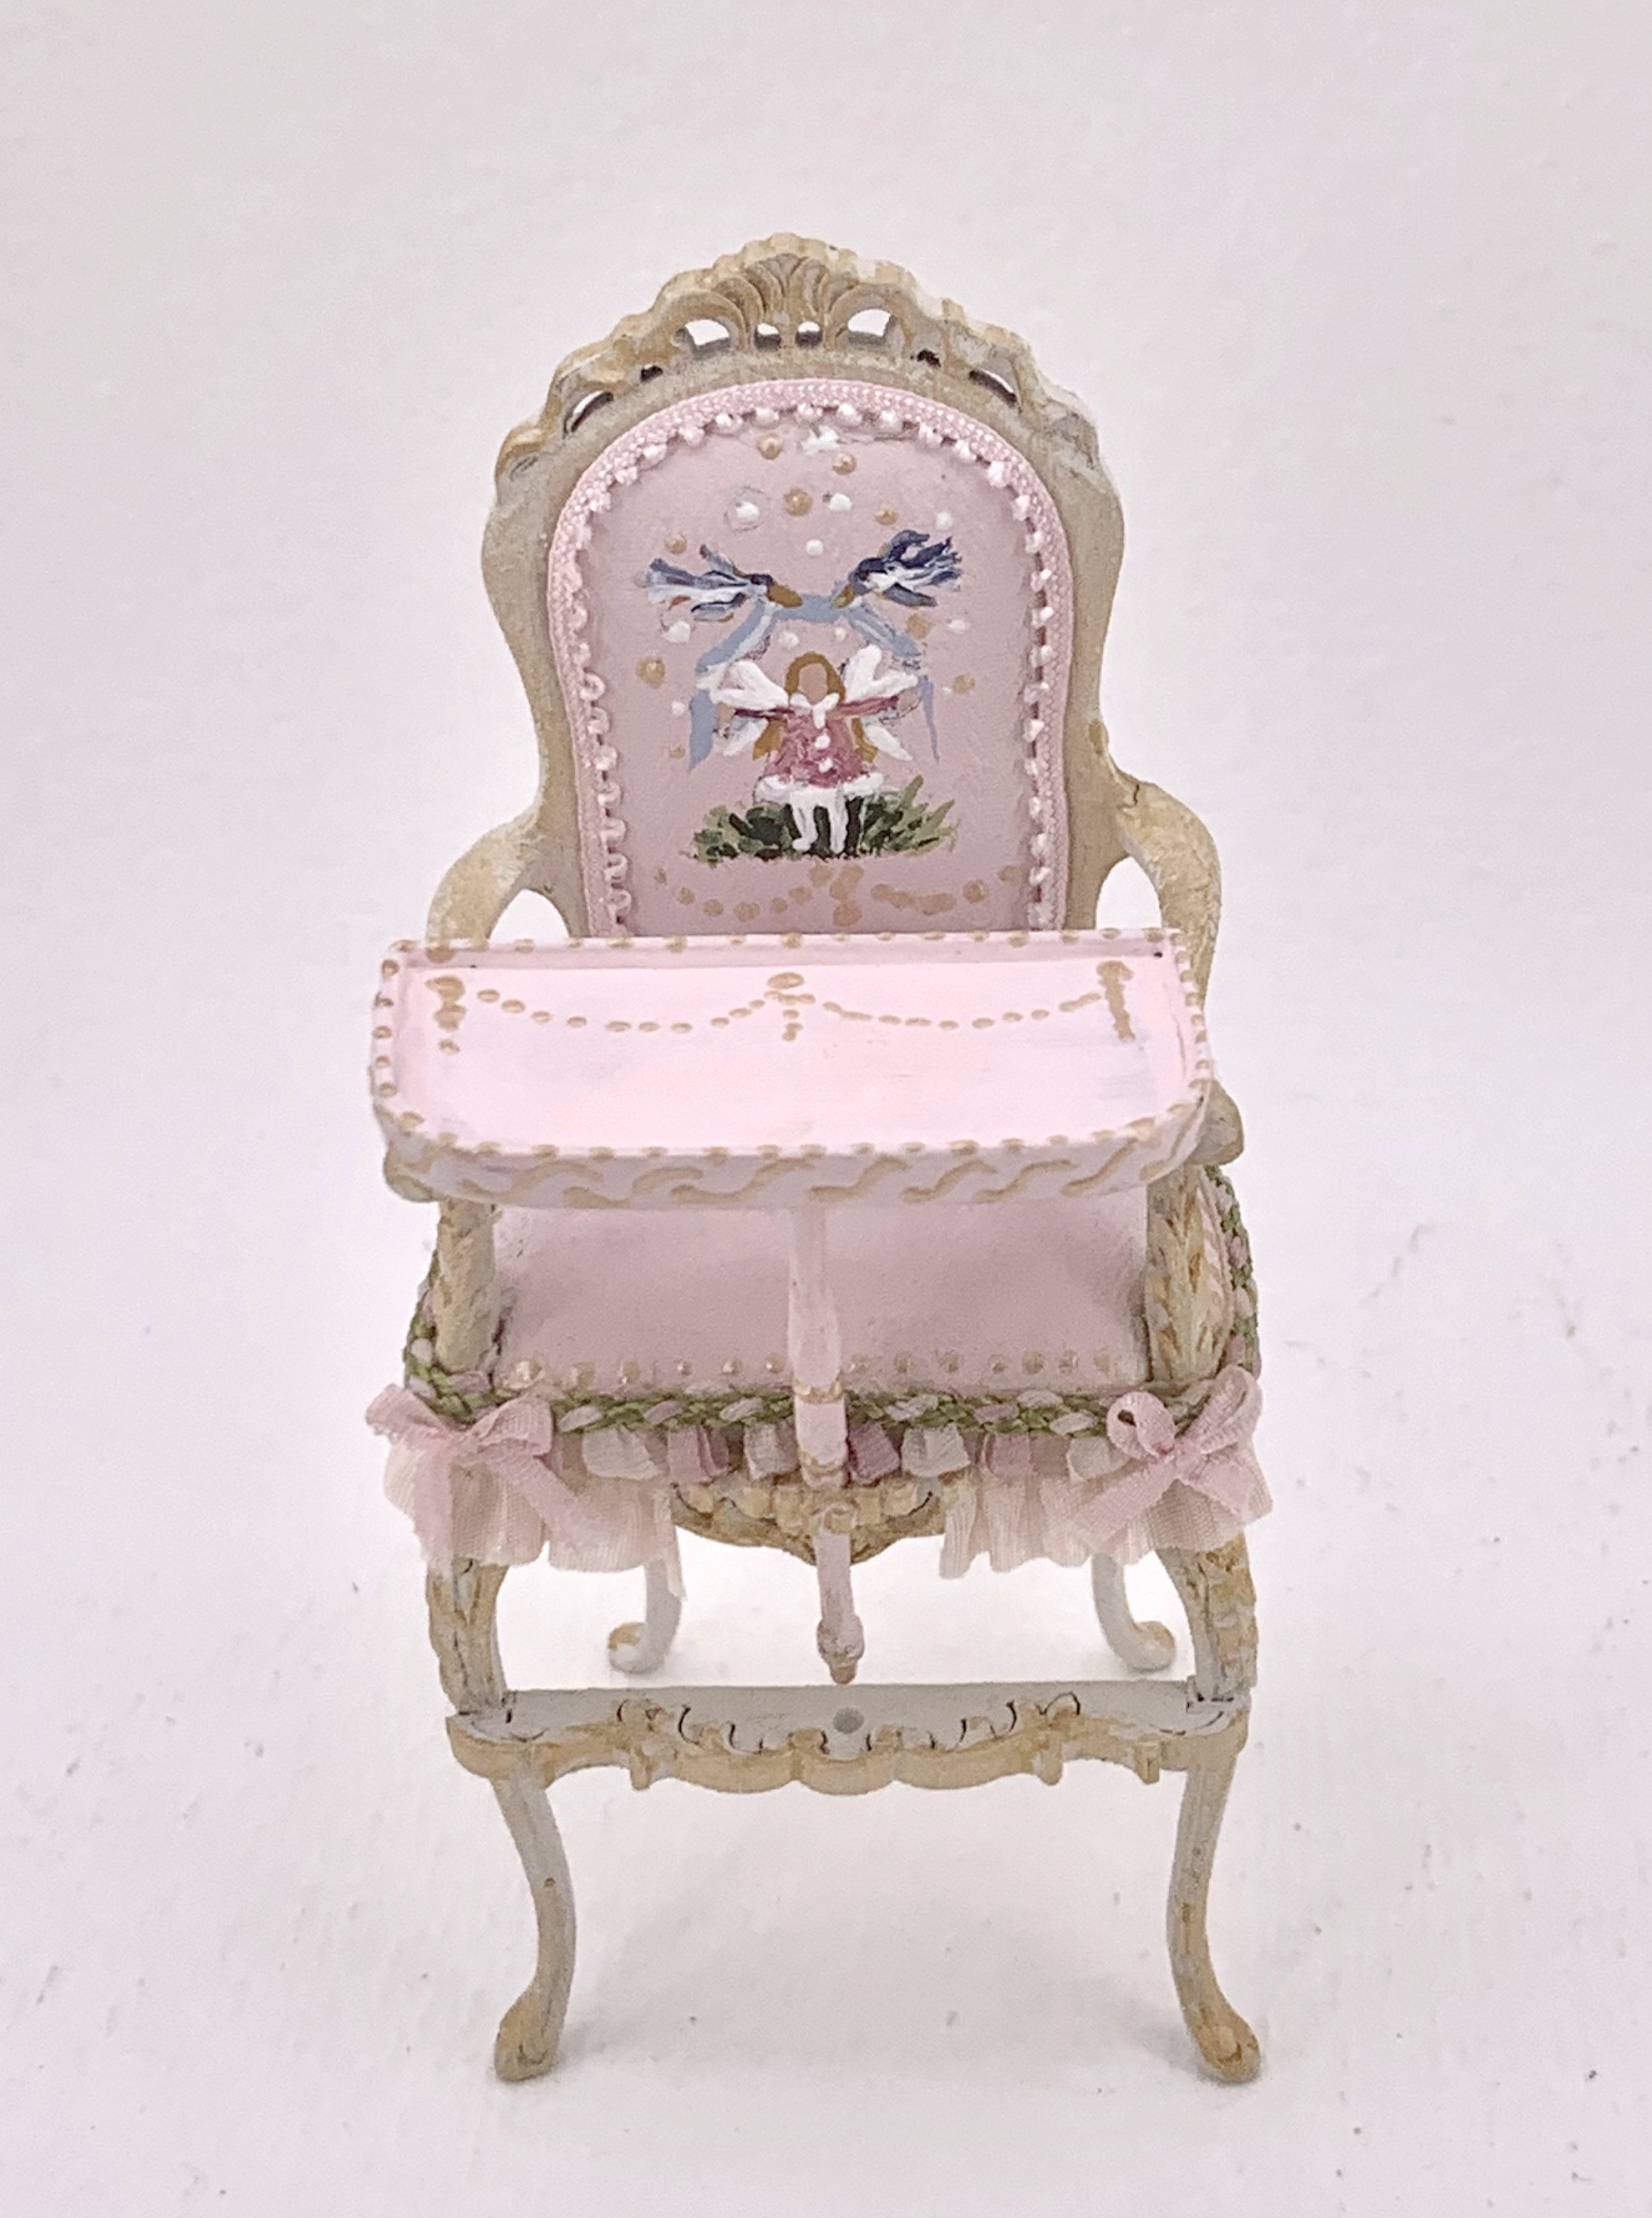 scale 1.12 baby room hand-painted  rocking chair in soft shades of pink and white